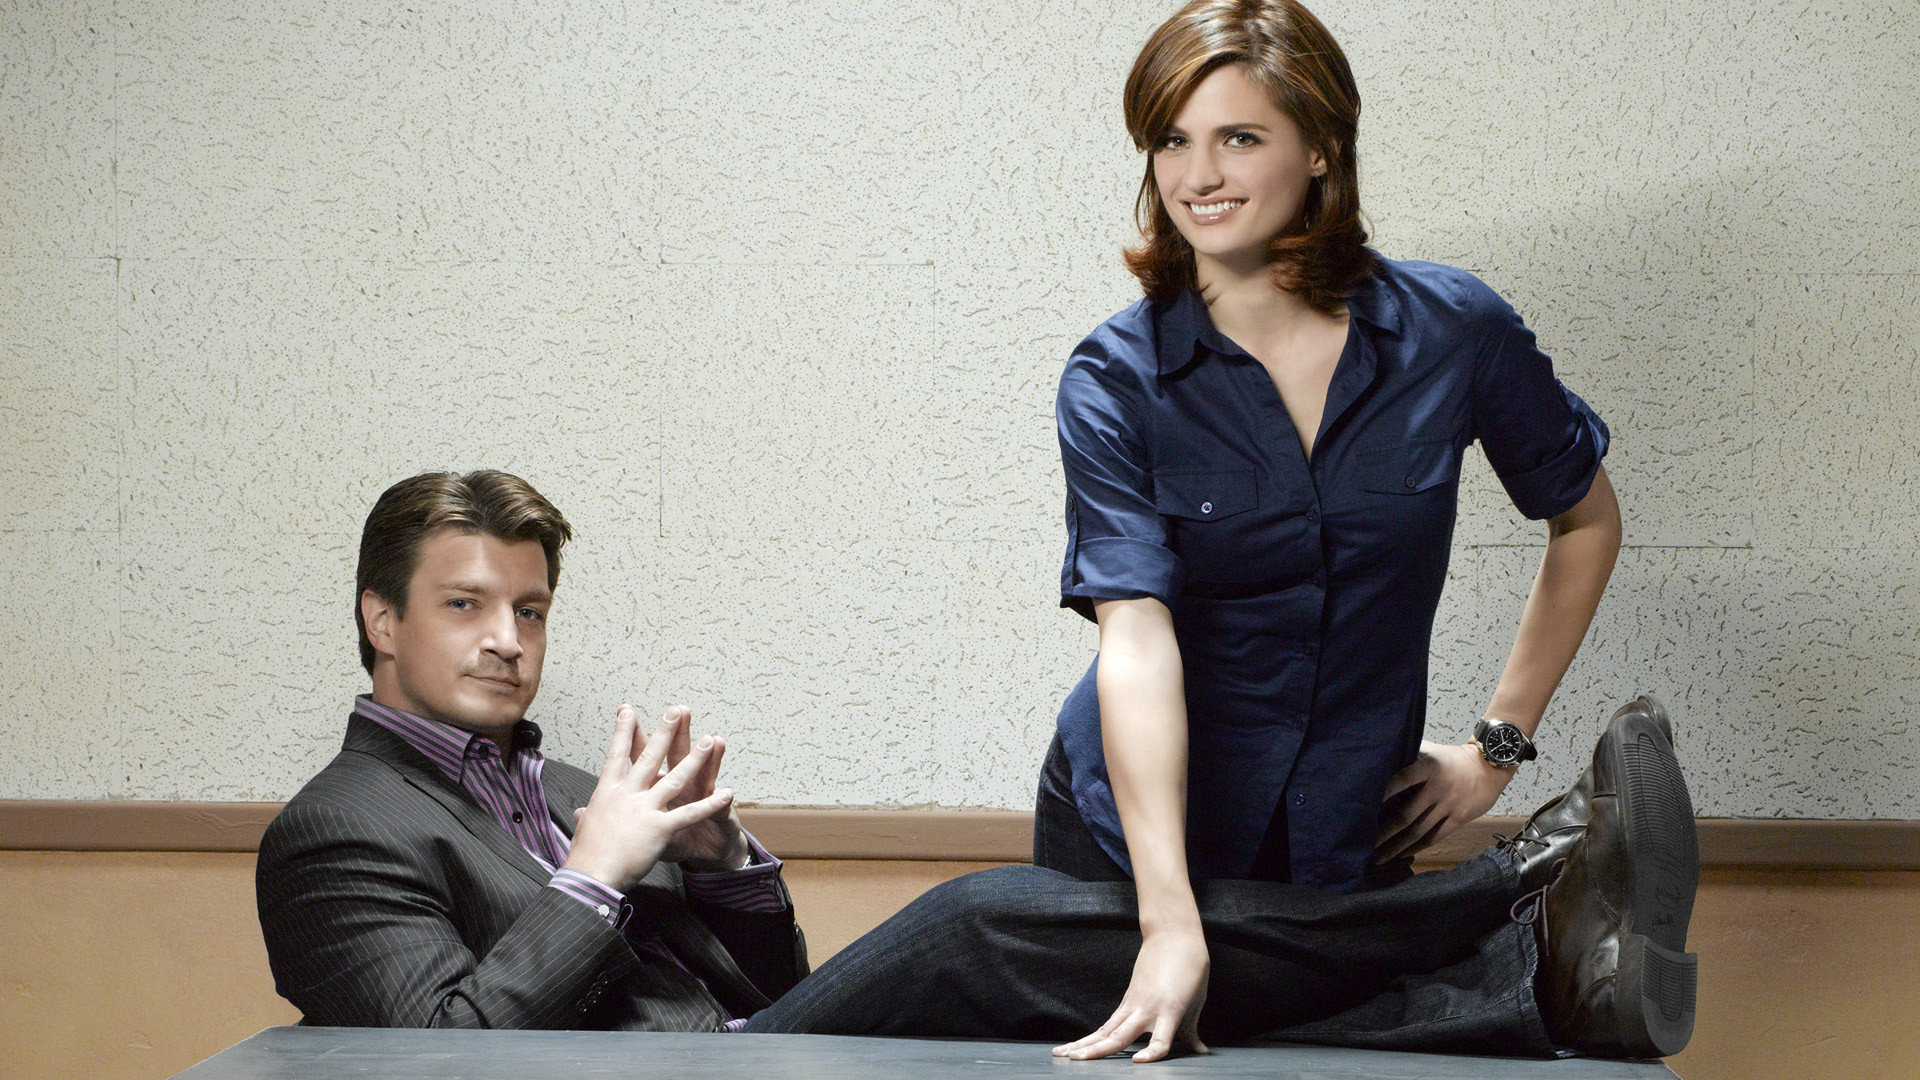 Download full hd Castle TV Show PC wallpaper ID:101041 for free